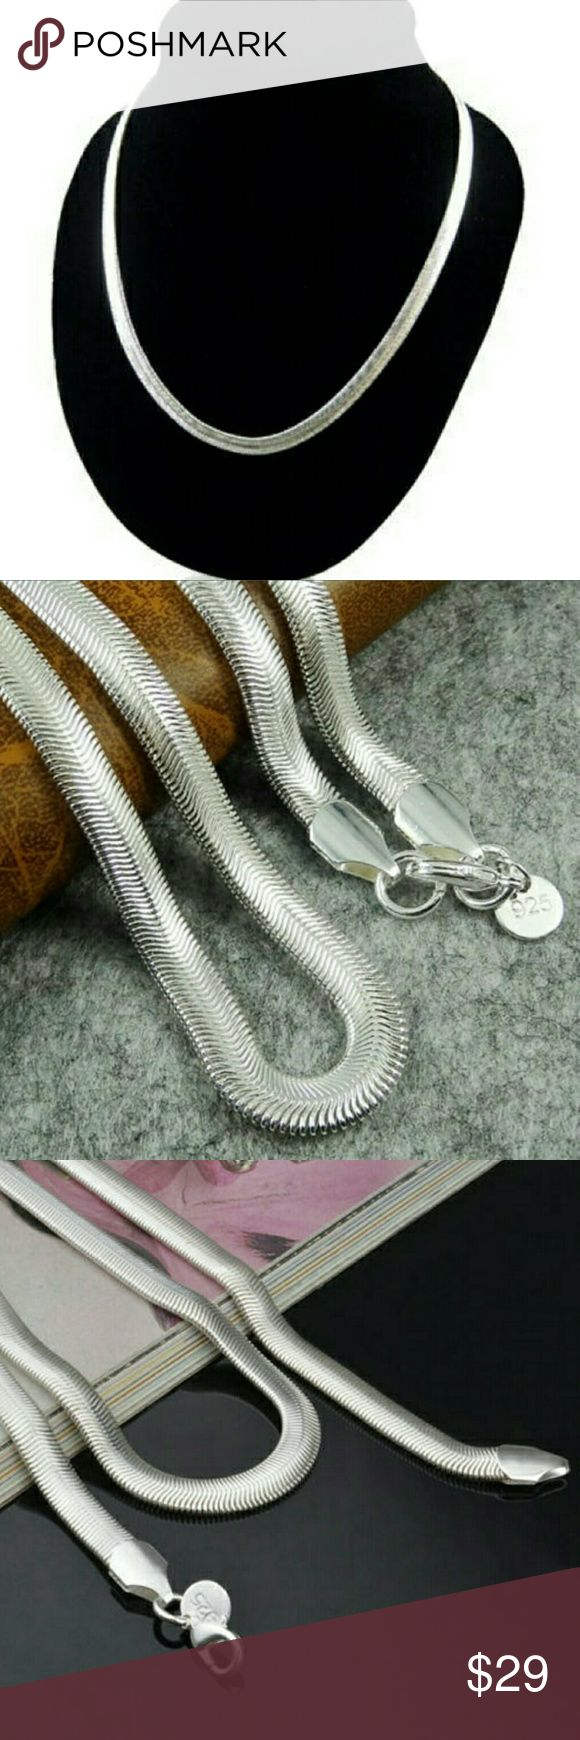 Silver snake necklace Bueatiful stamped .925 silver snake 6mm Jewelry Necklaces